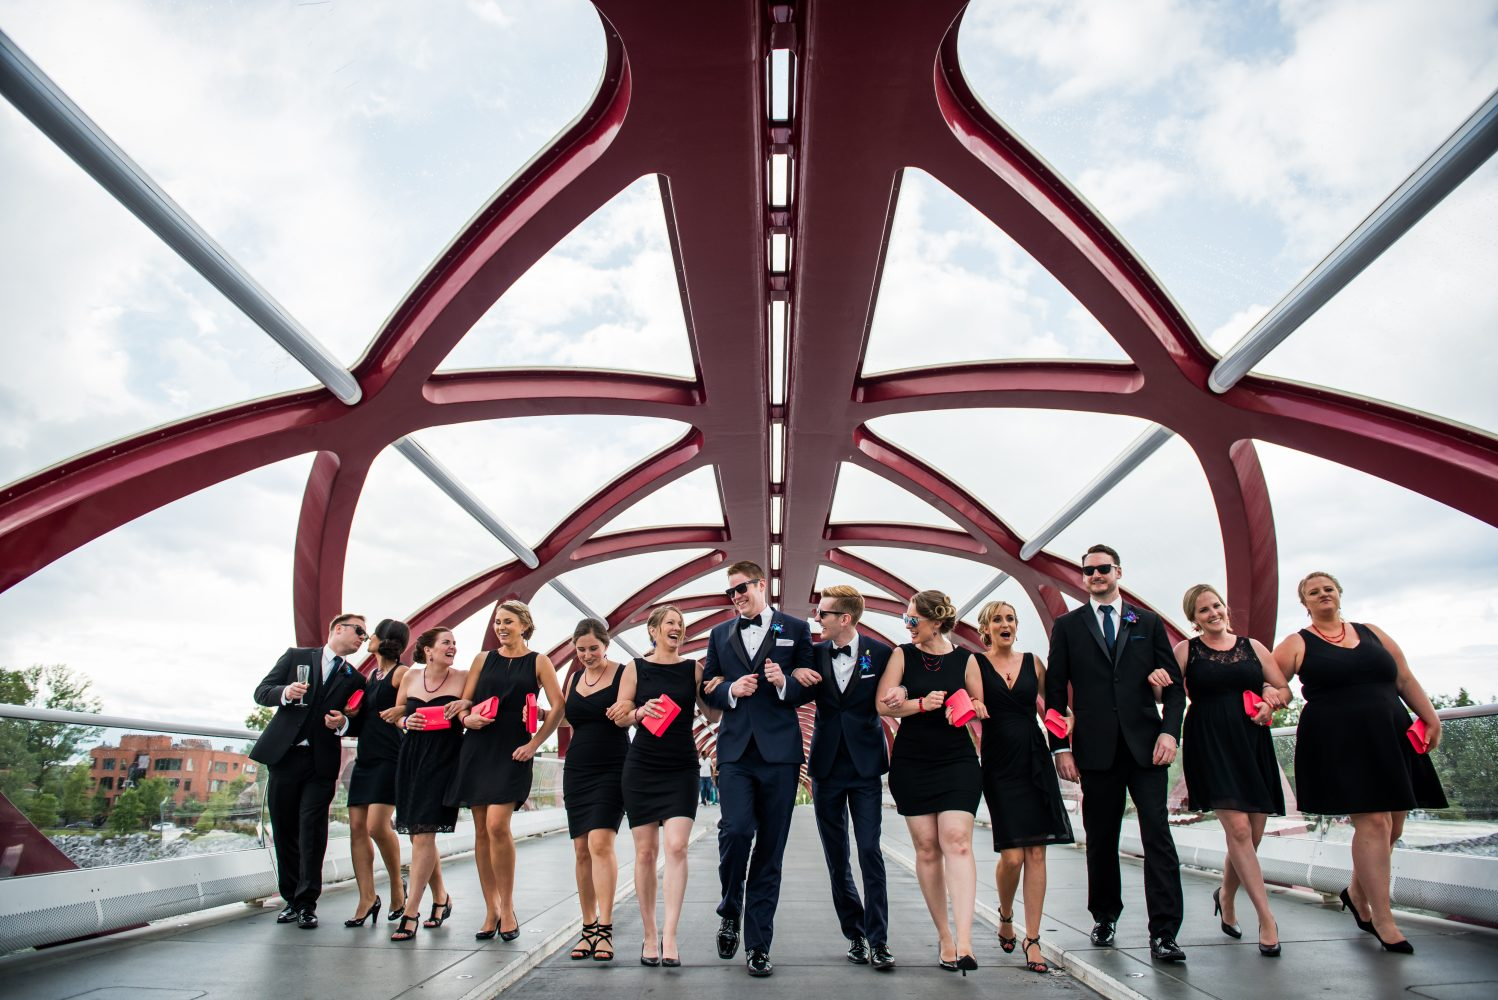 A stylish gay wedding with their bridal party photos taken on the peace bridge in Calgary Alberta | 3Haus Photographics